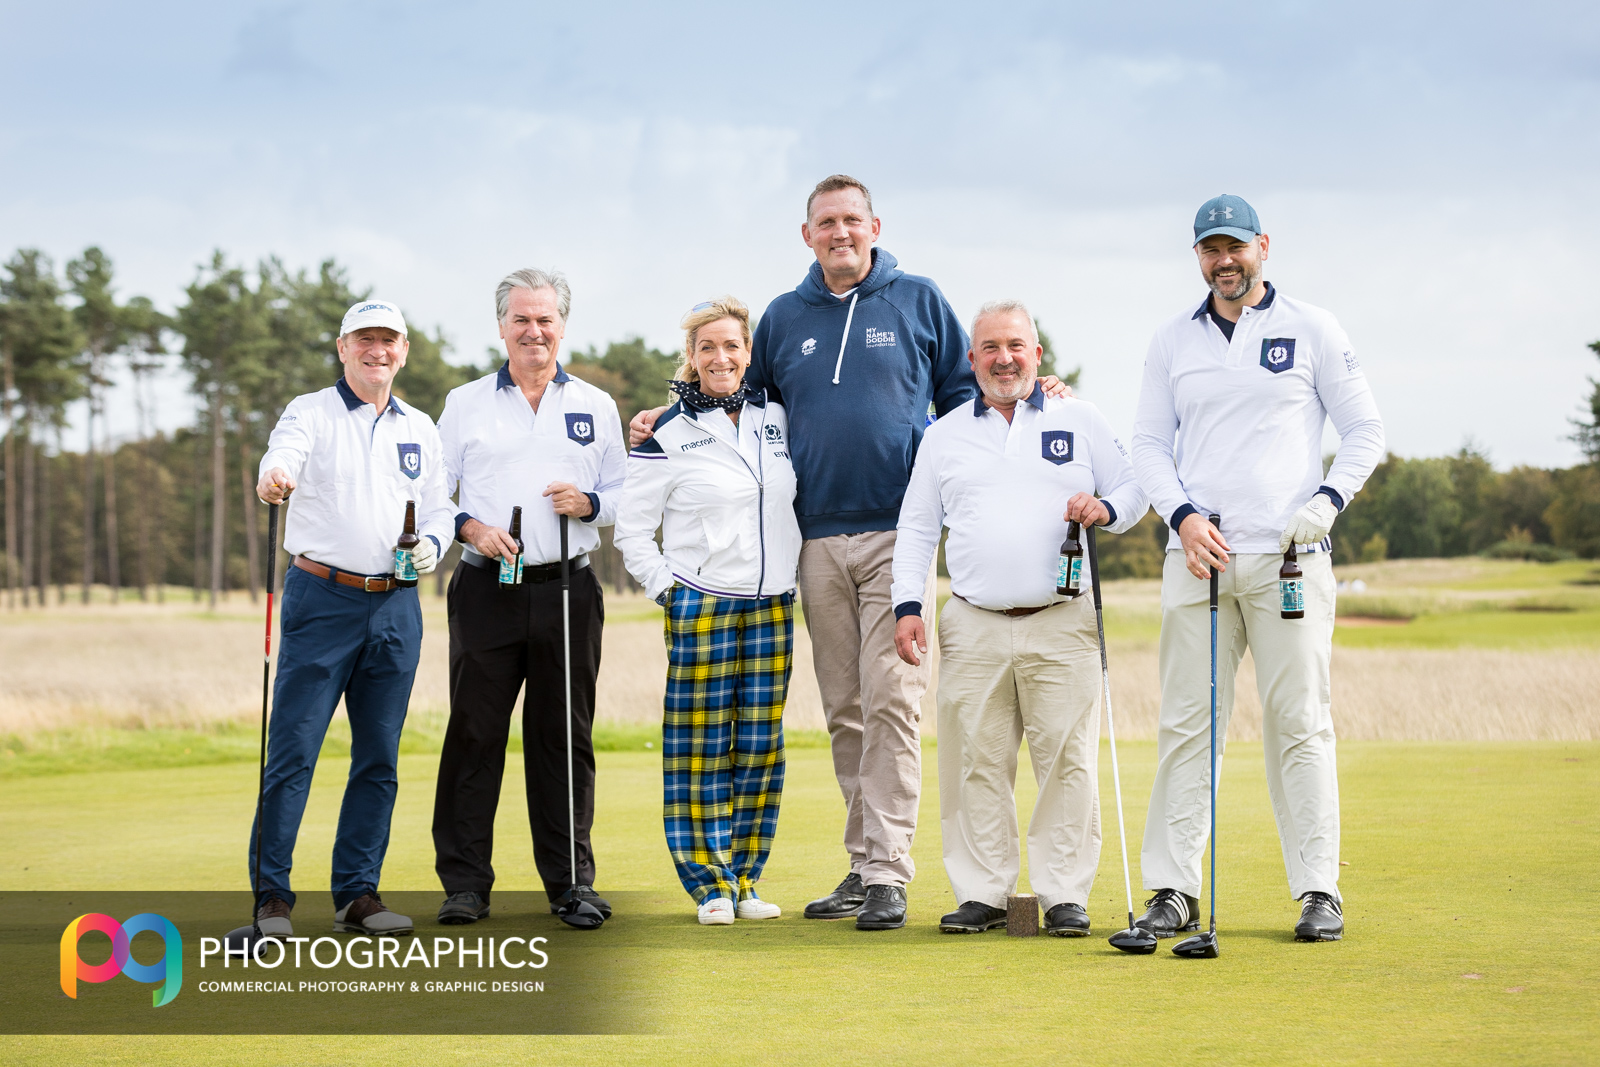 charity-golf-pr-event-photography-glasgow-edinburgh-scotland-12.jpg